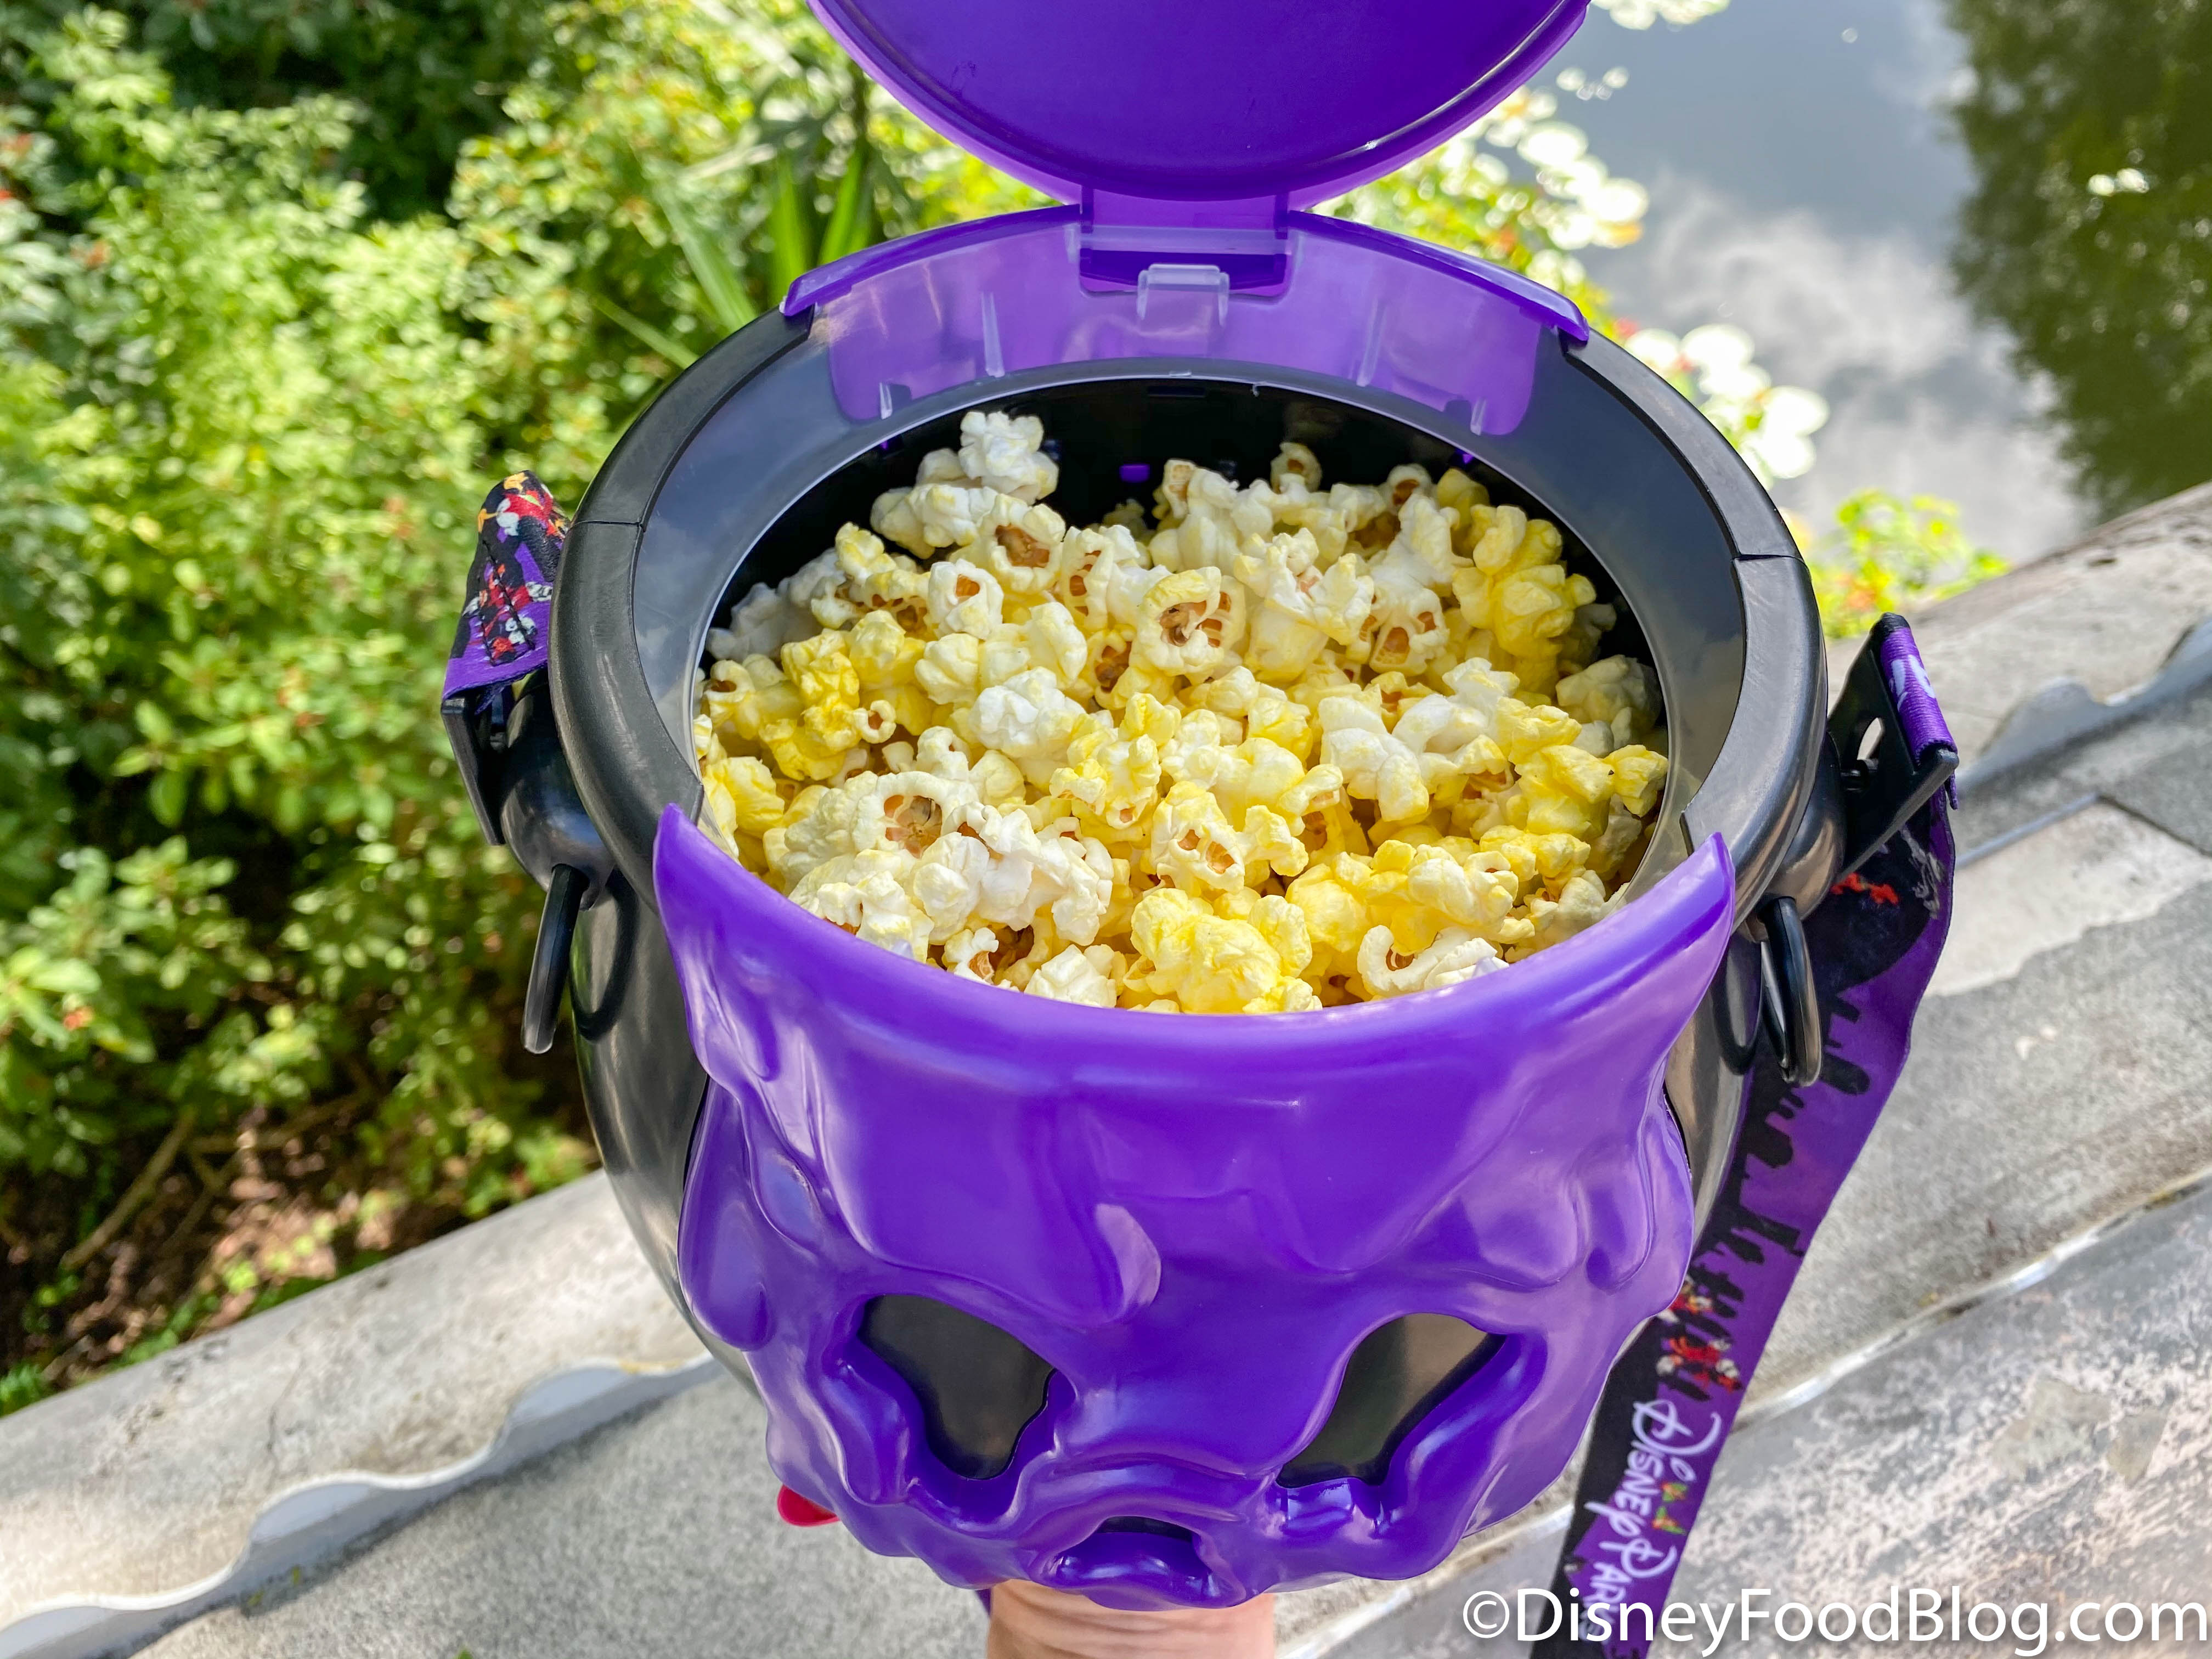 We Re Popping For Joy The First Halloween Popcorn Bucket Of 2020 Has Arrived In Disney World The Disney Food Blog